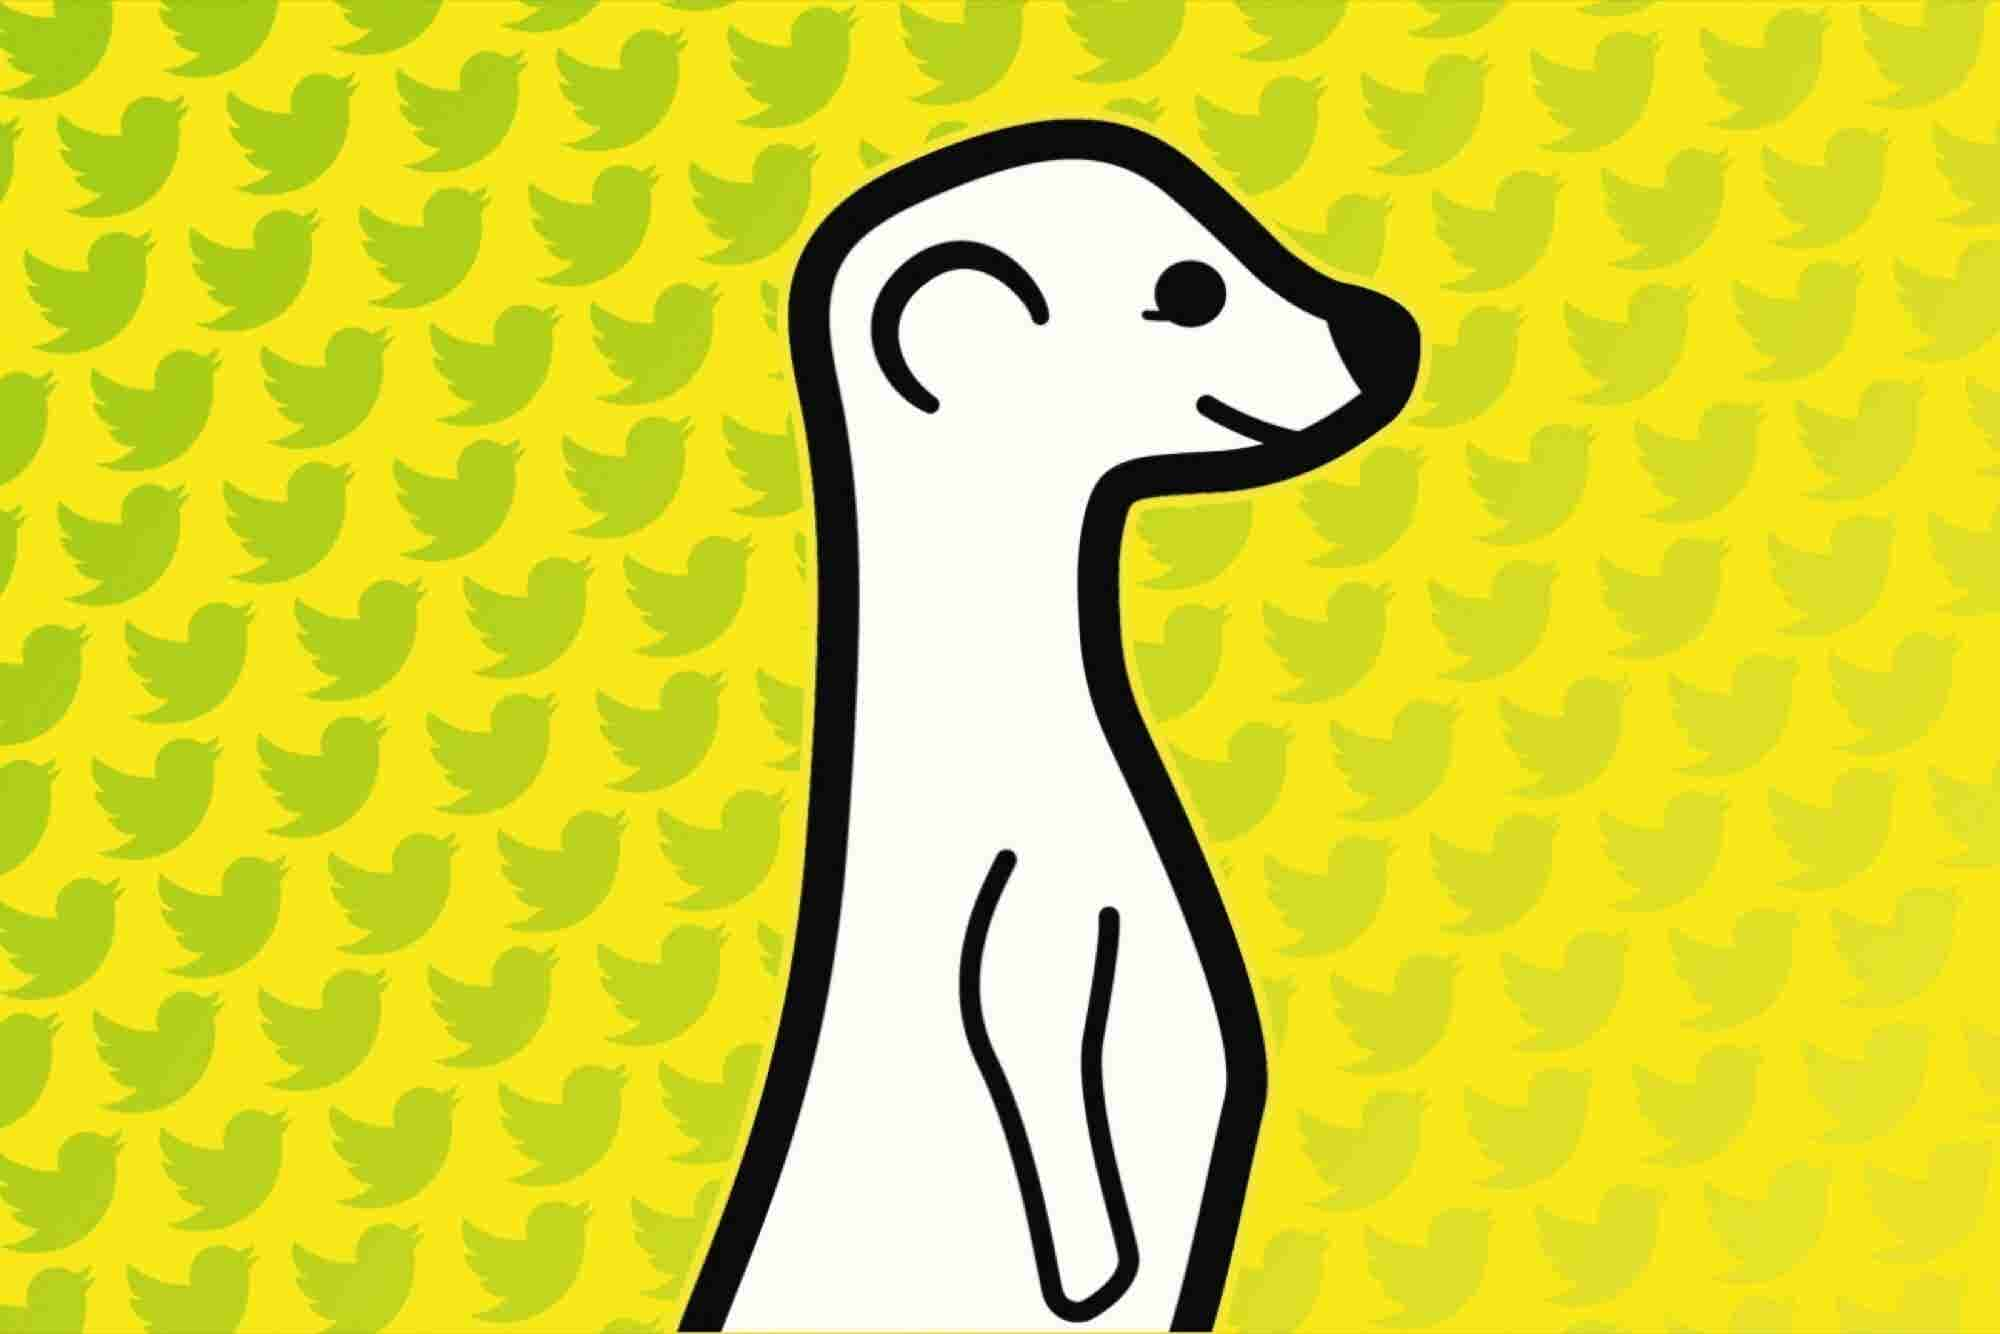 Meerkat CEO on Twitter Blockage: It's Their House, and We Need to Respect That